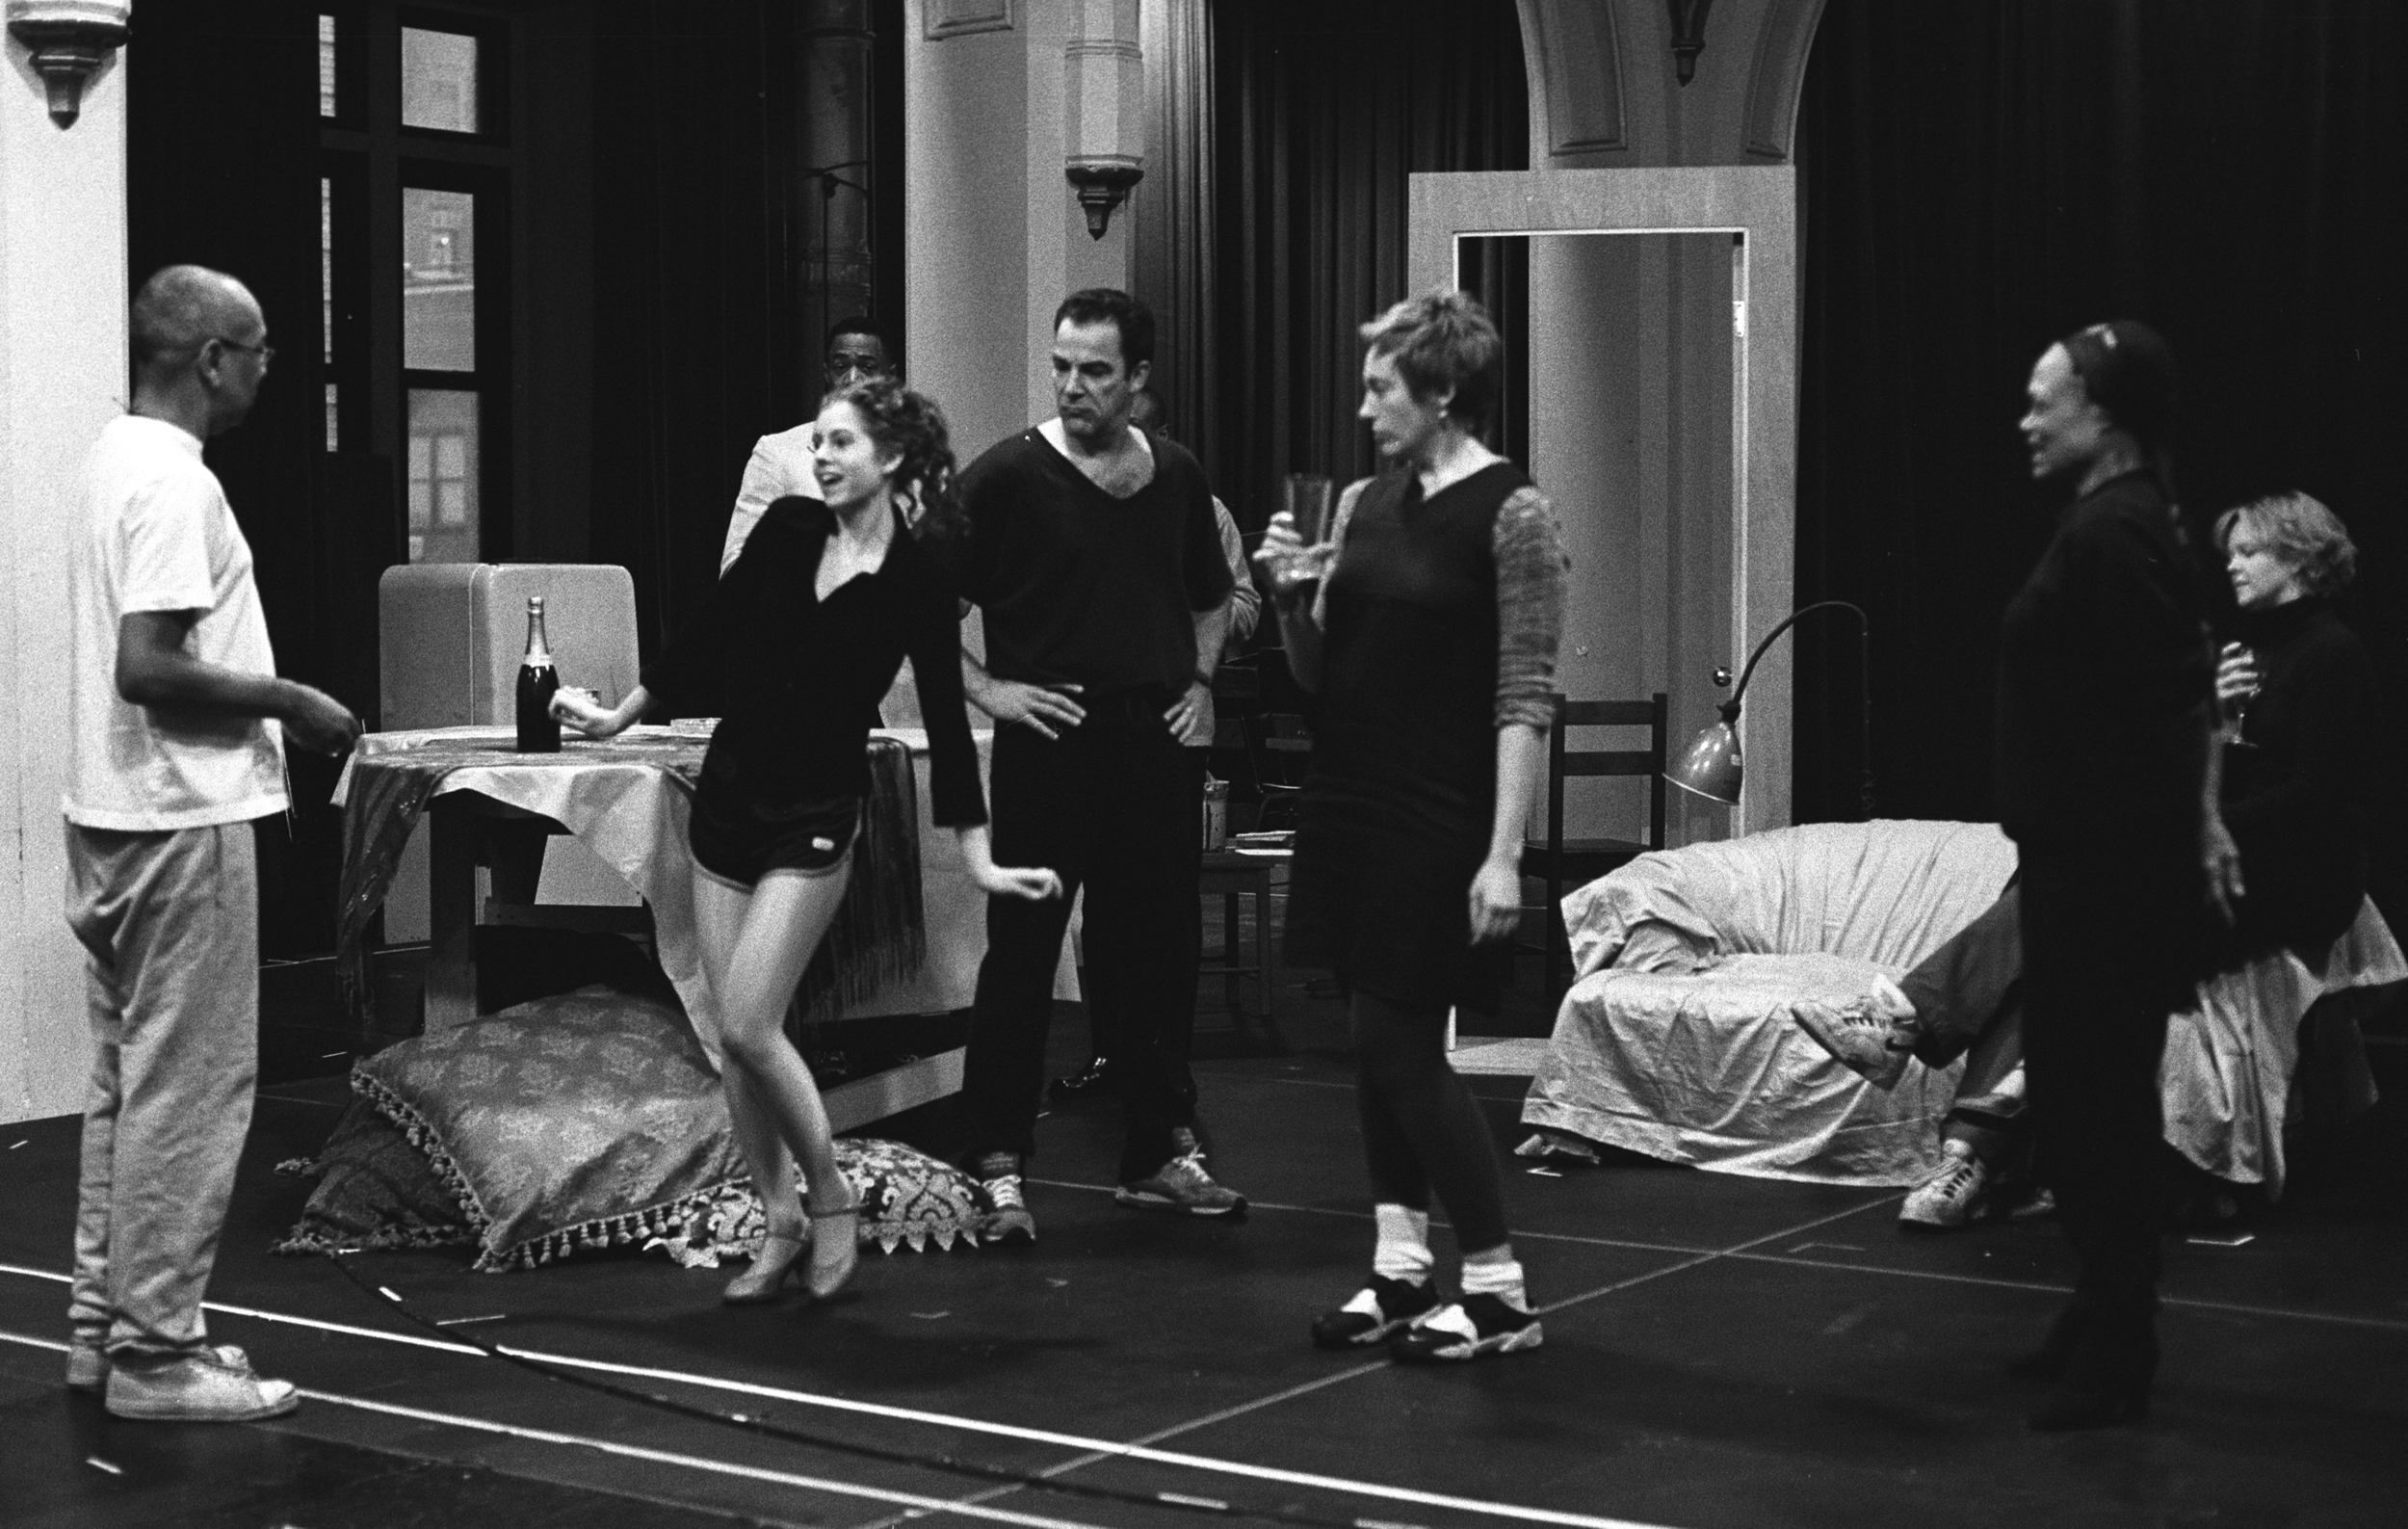 %22REHEARSAL AT THE PUBLIC THEATER WITH GEORGE C. WOLFE,  BROOKE, MANDY PATINKIN, TONY COLETTE, EARTHA KITT, AND LEAH HOCKING%22.jpg